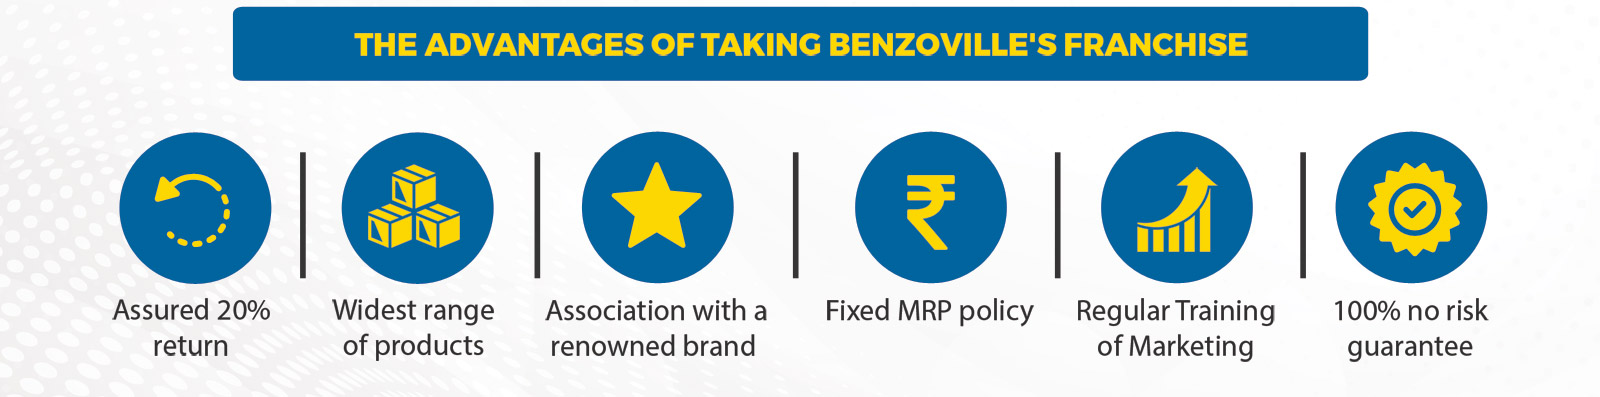 Benzoville Franchise Advantages